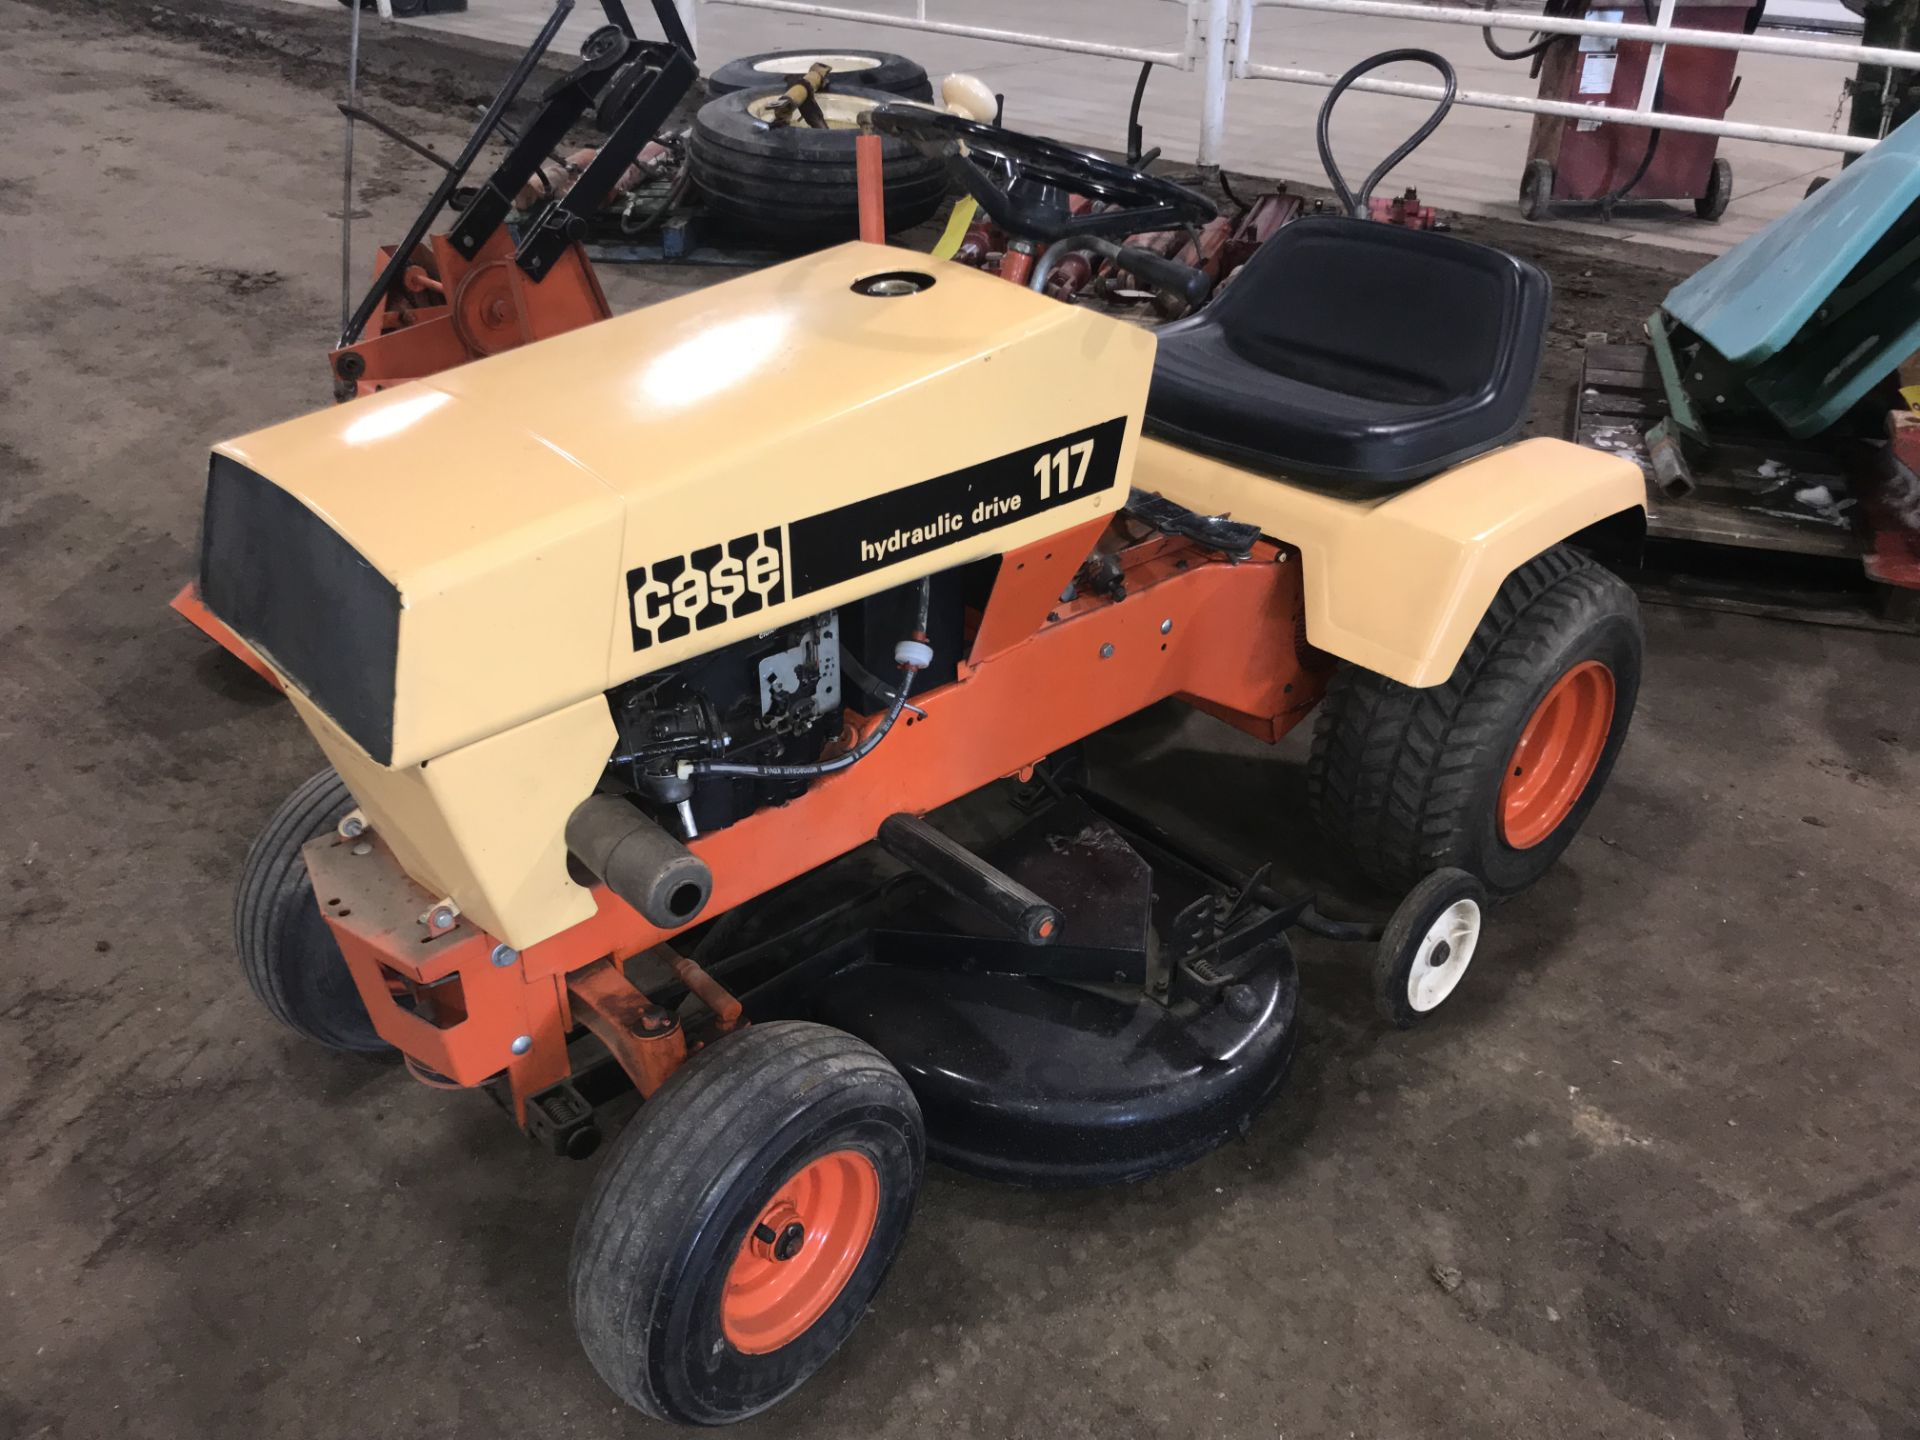 Lot 19 - Case #117 Hydro Mower w/Front Mount Snow Blower